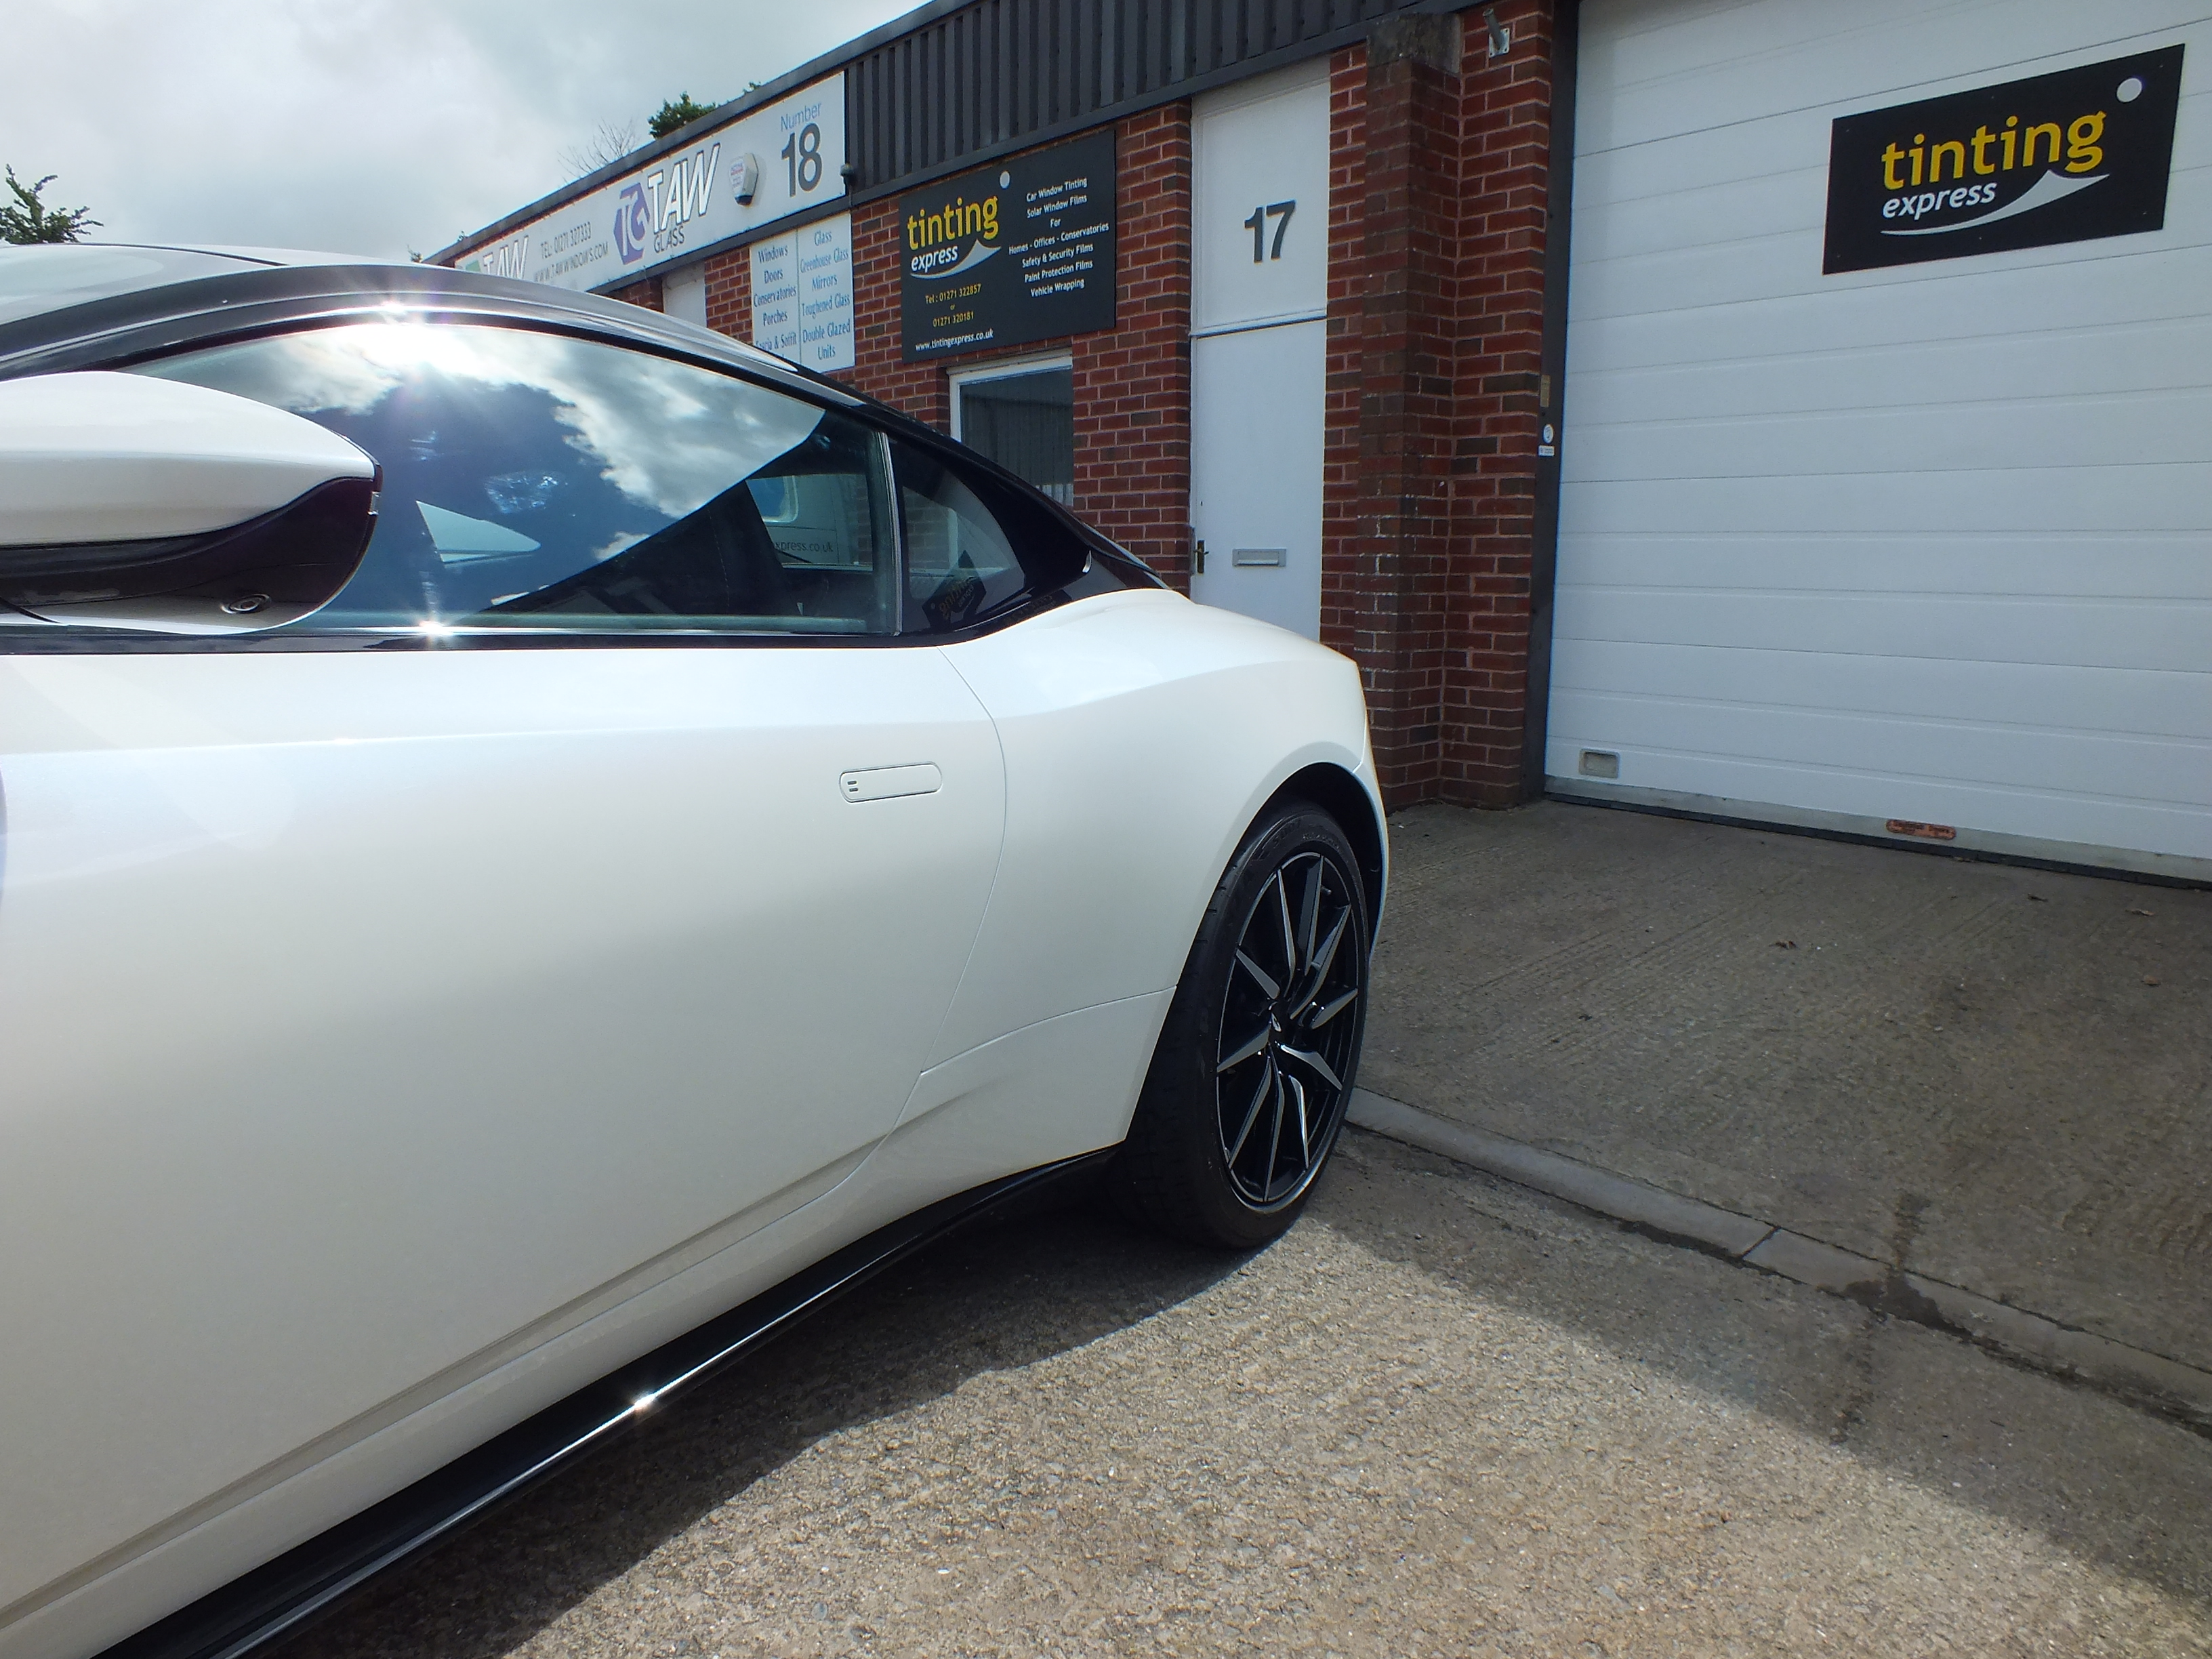 Paint Protection Film application completed on this Aston Martin DB11 by Tinting Express Ltd